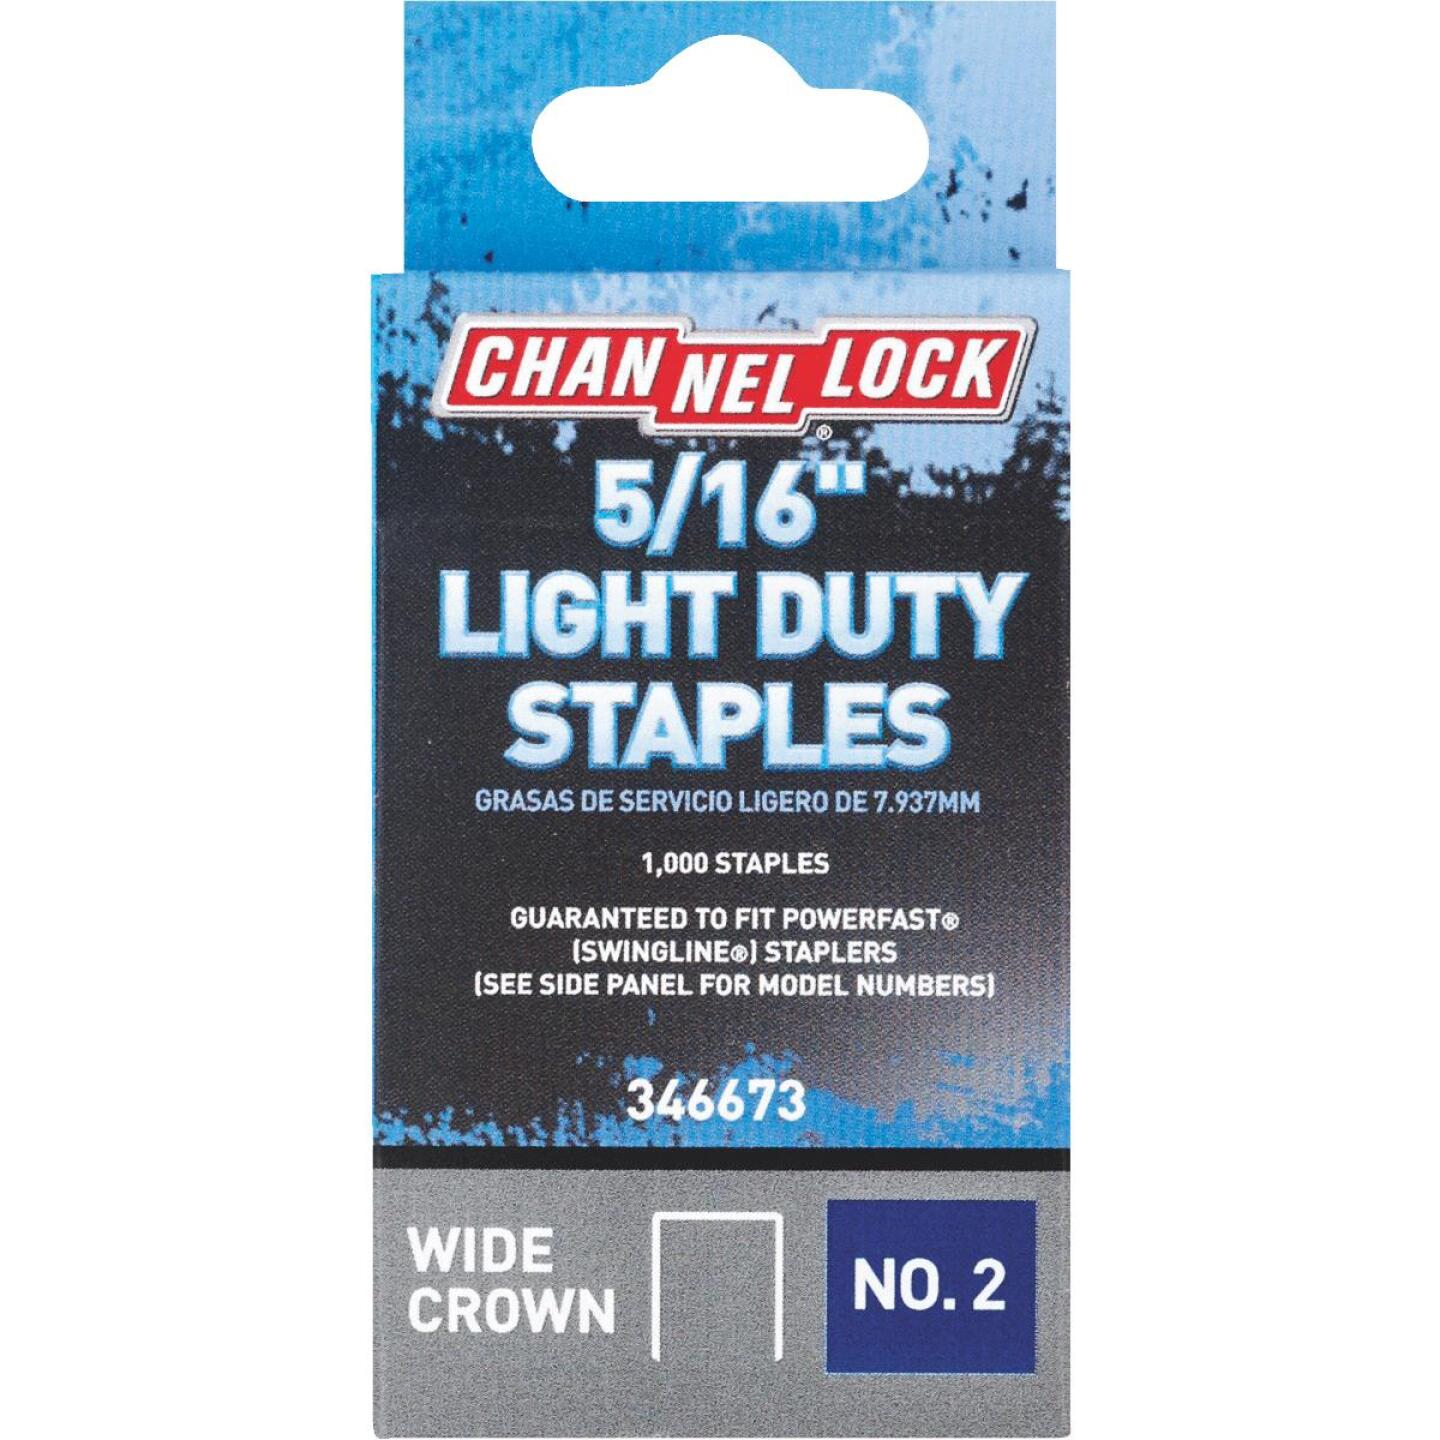 Channellock No. 2 Light Duty Wide Crown Staple, 5/16 In. (1000-Pack) Image 1